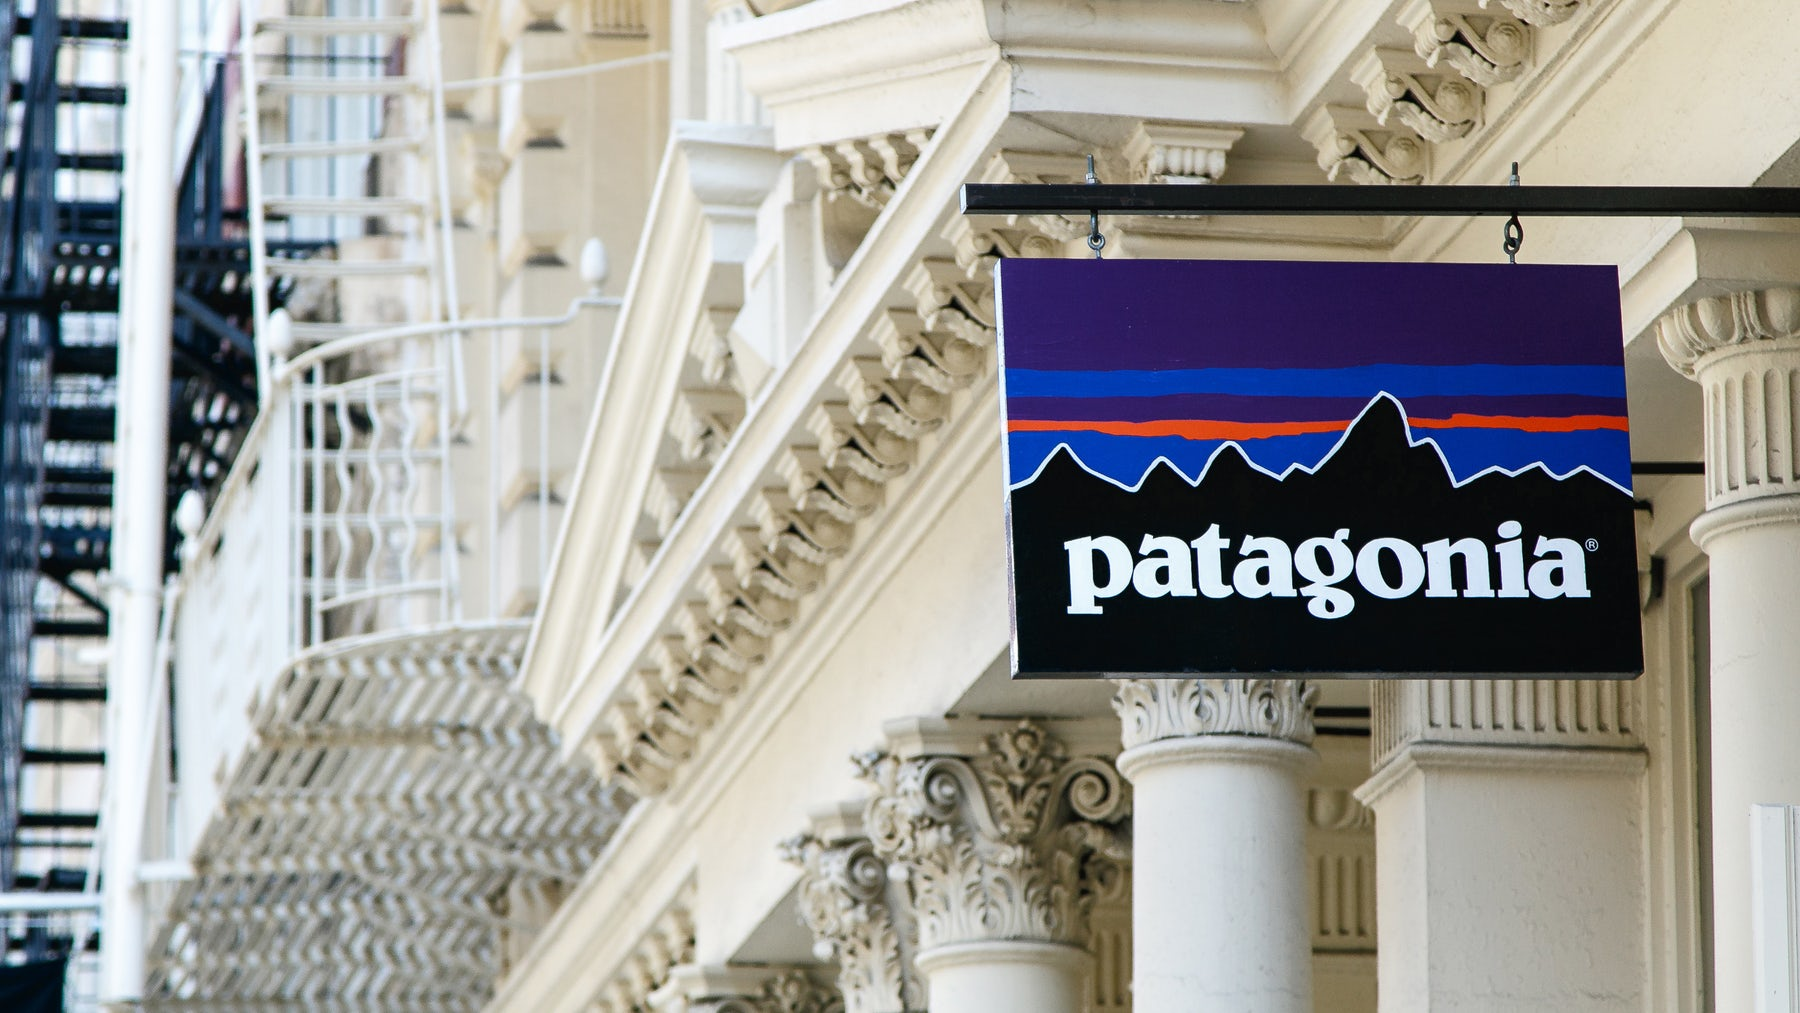 Patagonia store in New York | Source: Shutterstock